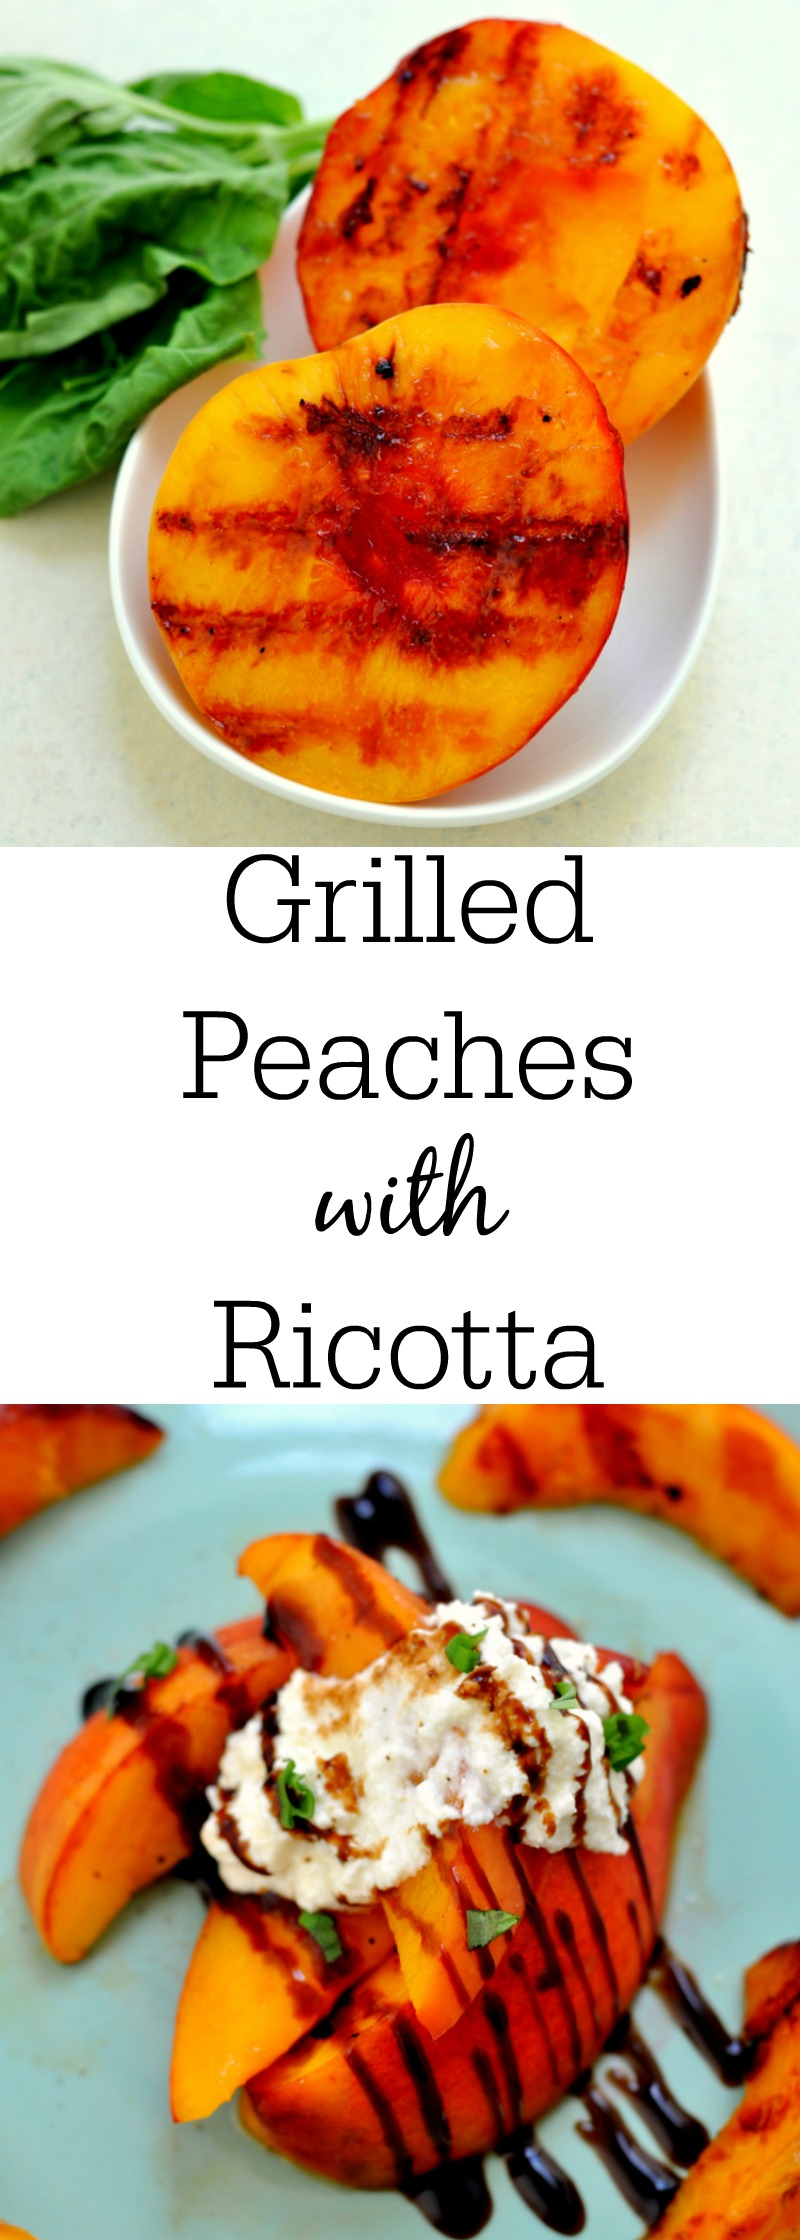 Grilled Peaches with Homemade Ricotta